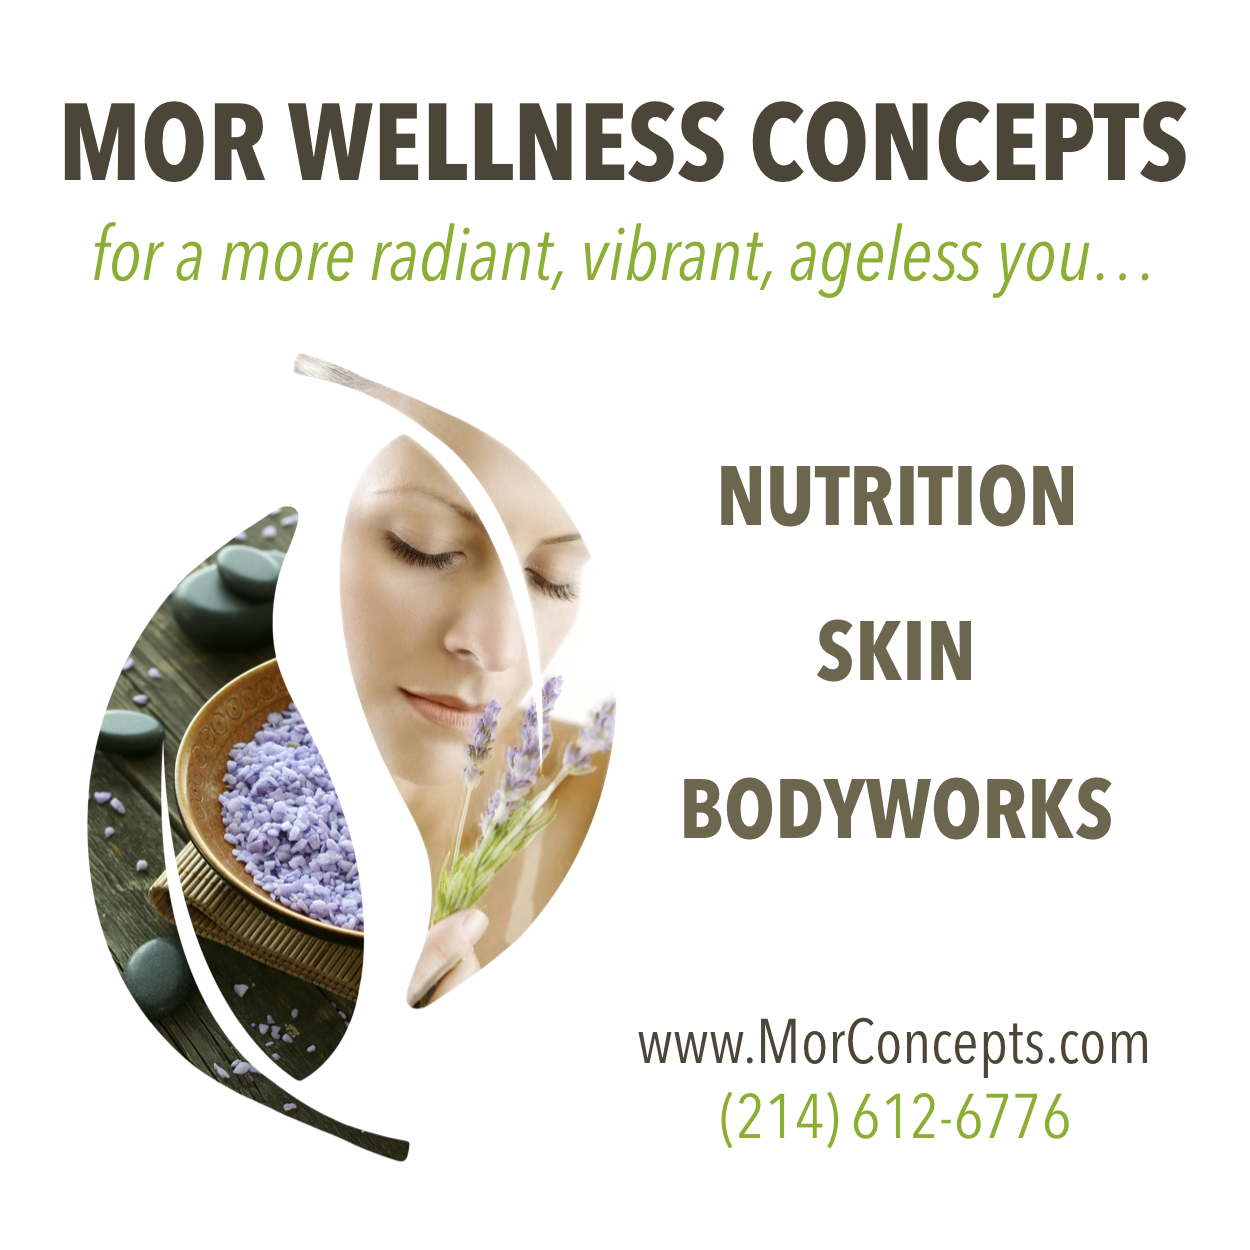 Mor Wellness Concepts